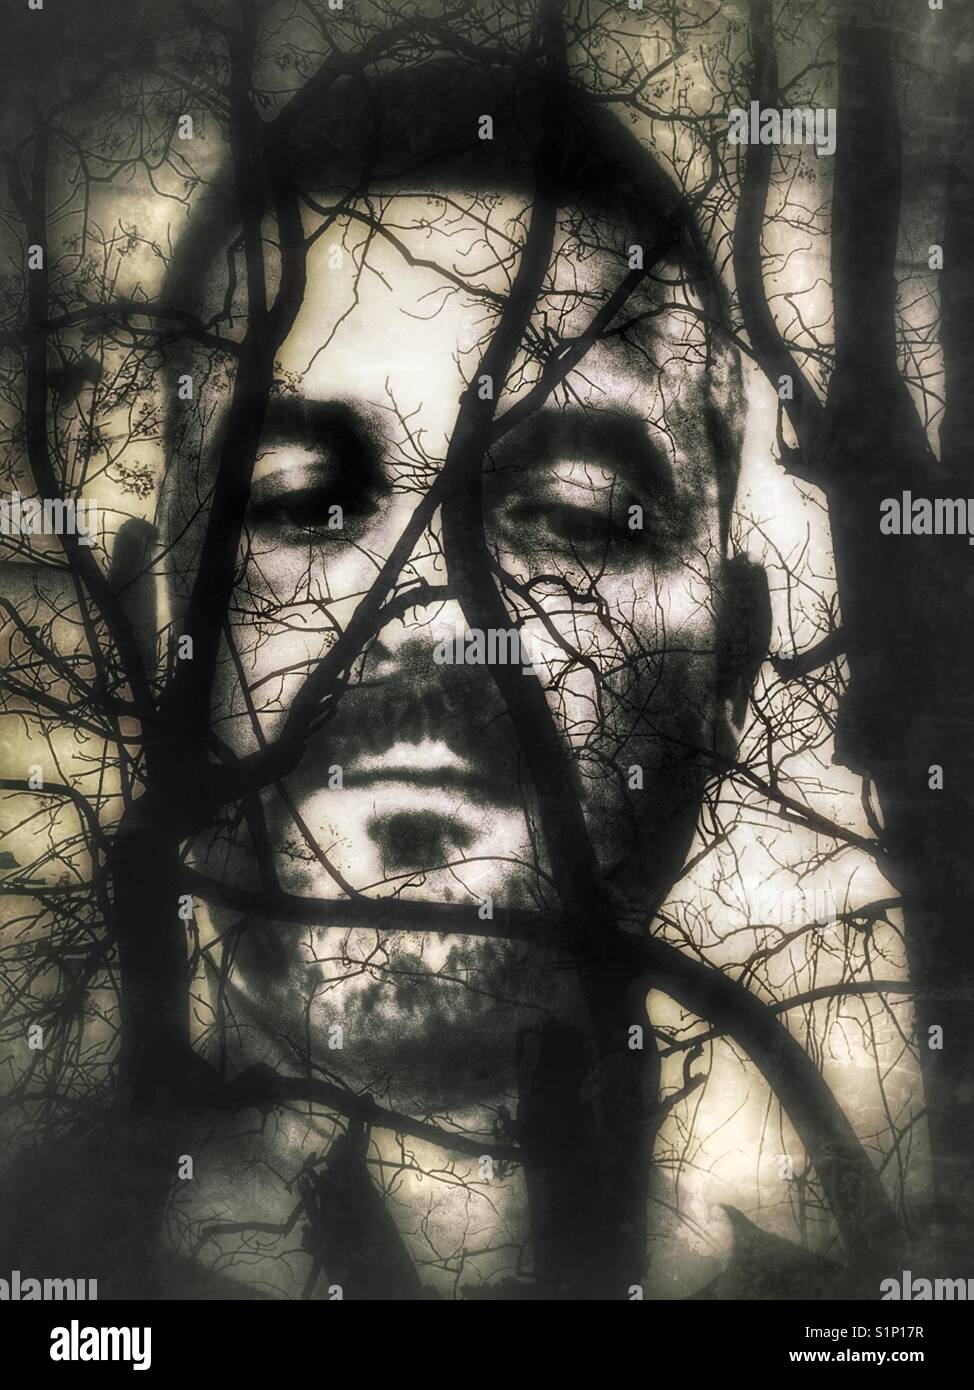 Multi exposure conceptual of an adult males face behind gnarled tree branches. - Stock Image